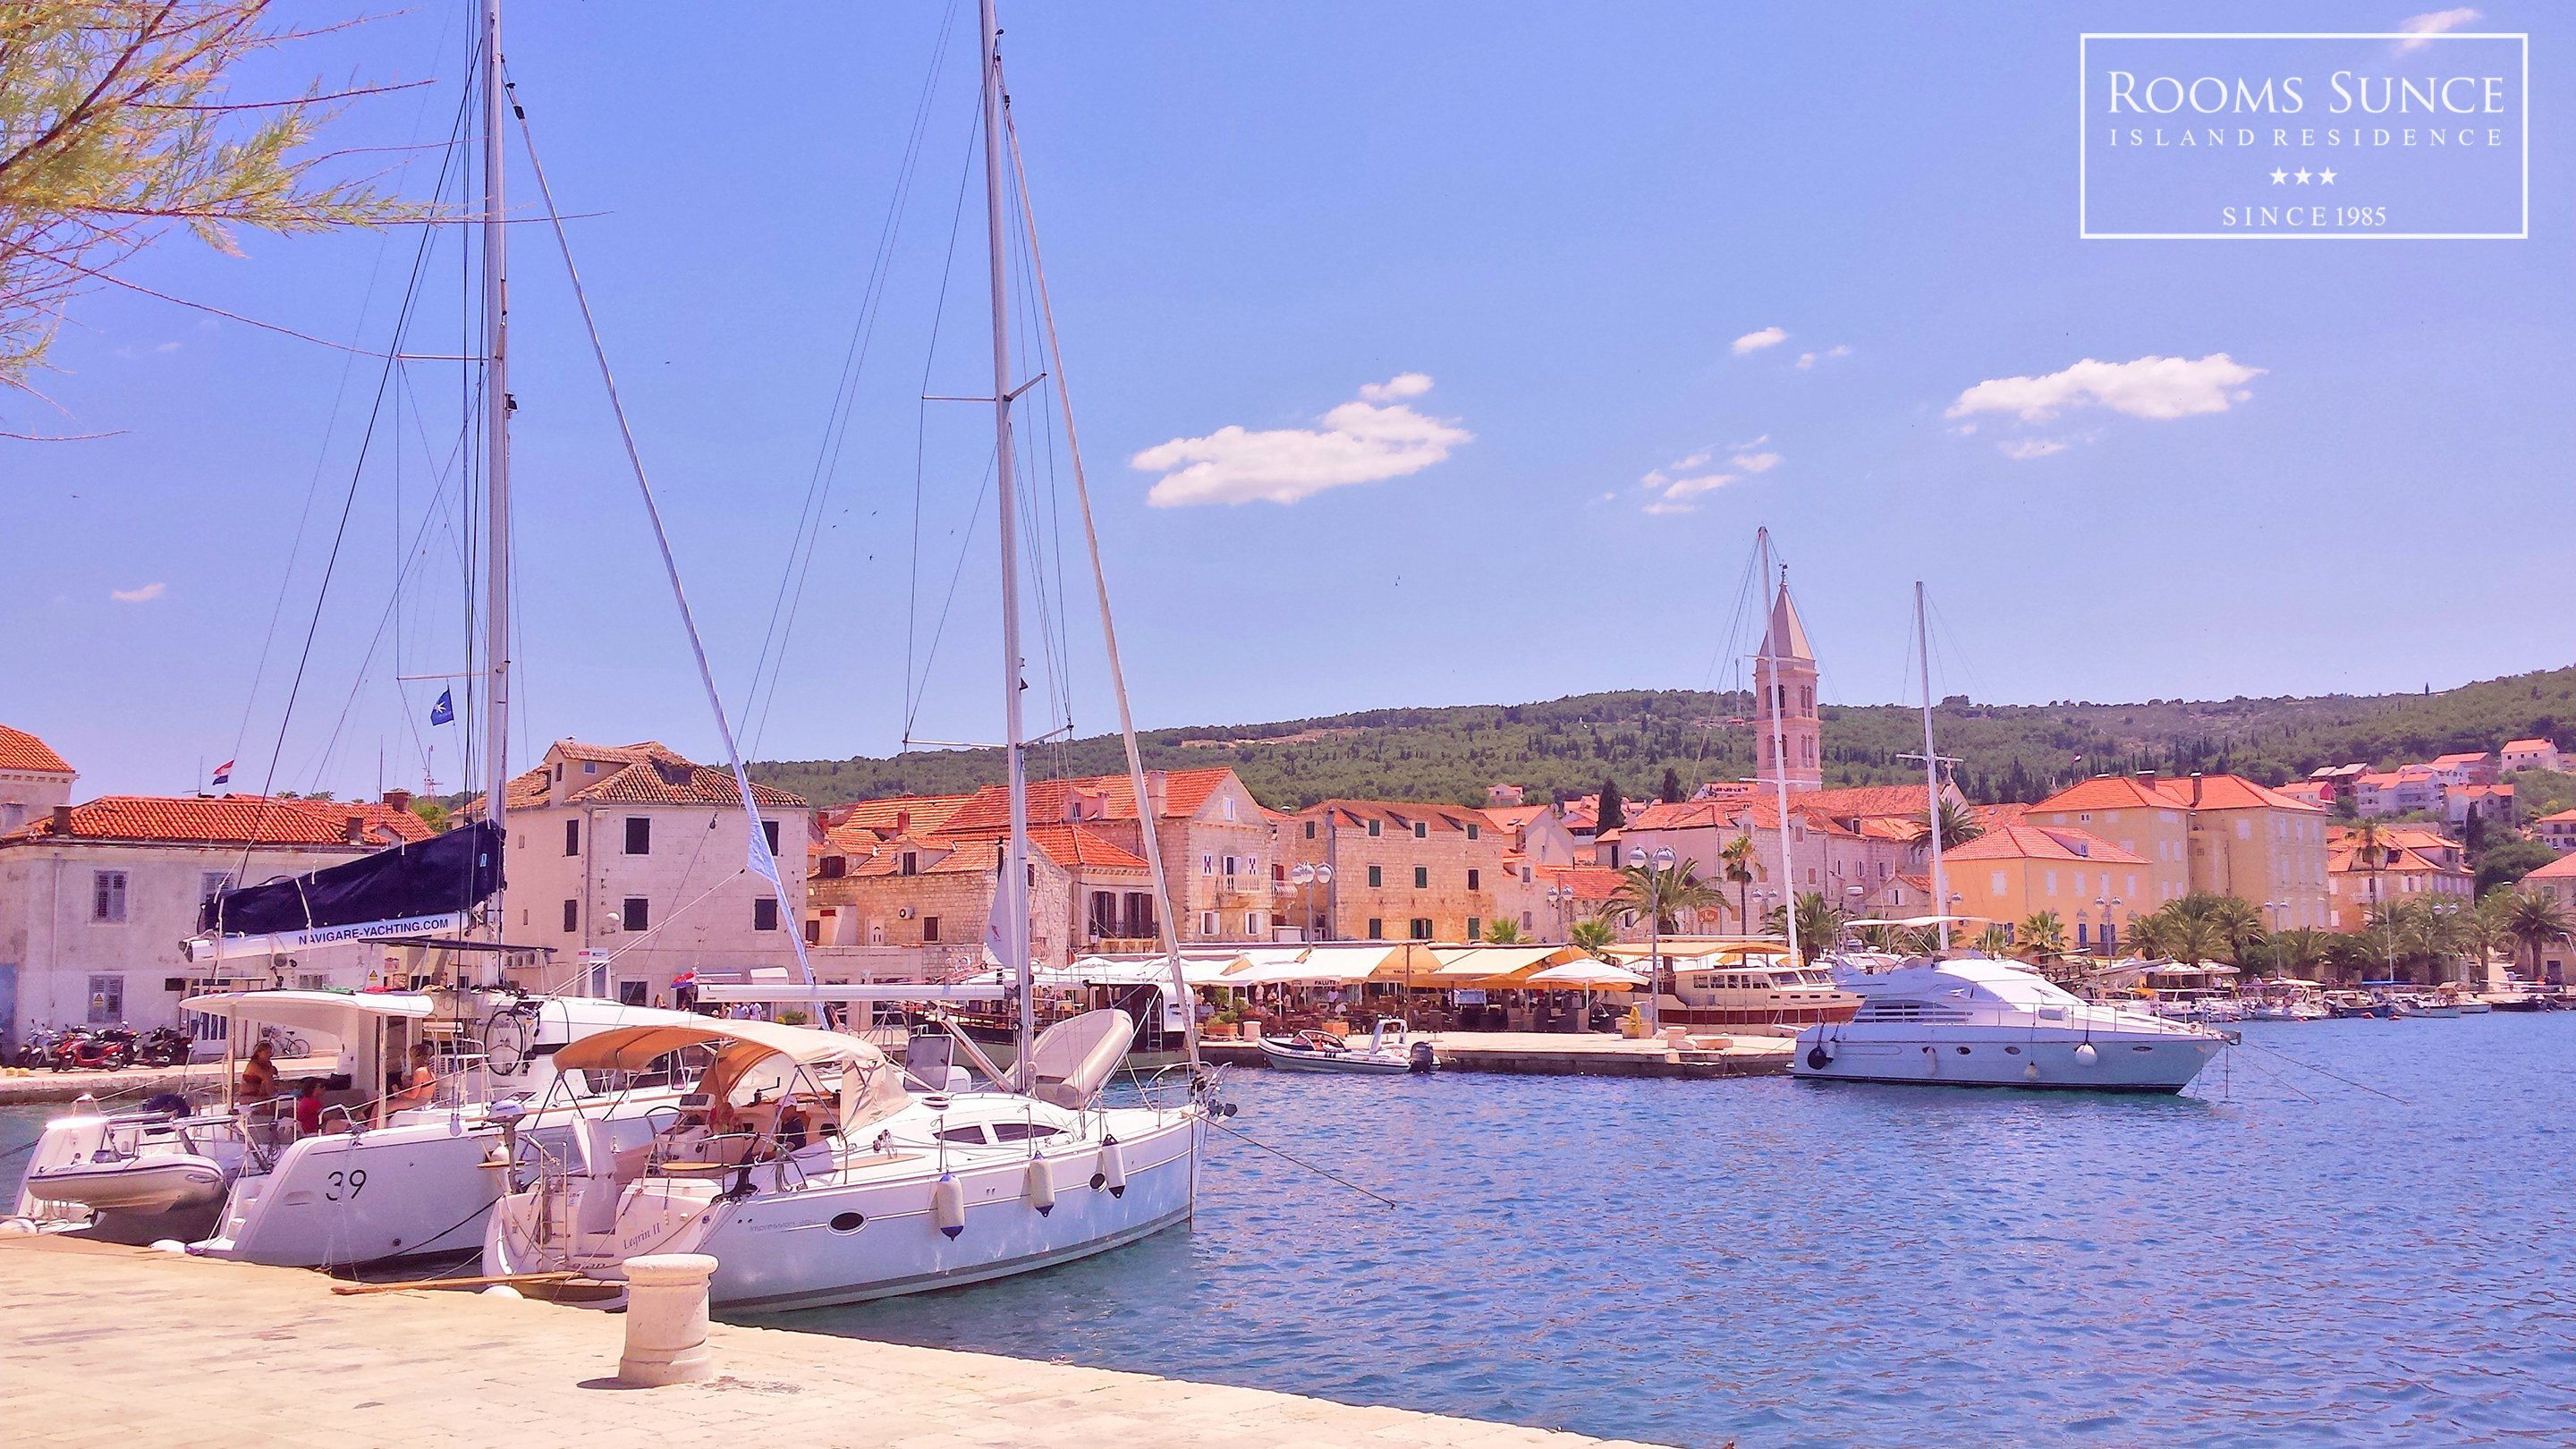 The port of Supetar offers you the opportunity to enjoy in your morning coffee by the Adriatic sea and buy fresh fish, fruits and mediterranean delicacies at the local farmers market in Supetar. Promenade is about 10 minutes walk from our Rooms and Apartments in Supetar.